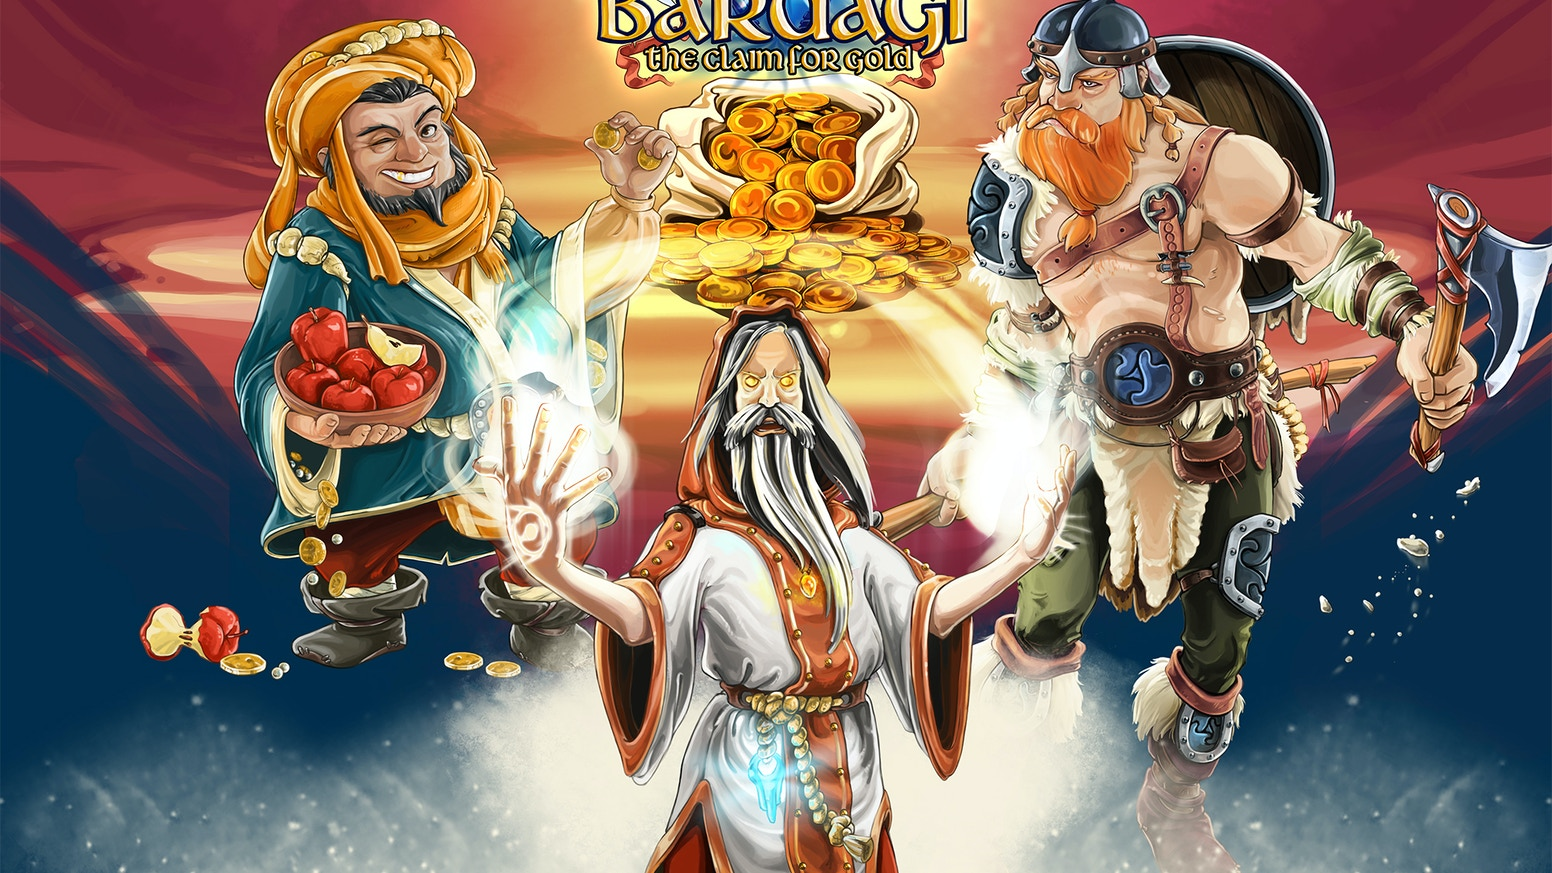 Bardagi: The Claim for Gold is a card-driven, area management, adventure board game for 2-5 players by Gamia games in Sweden.